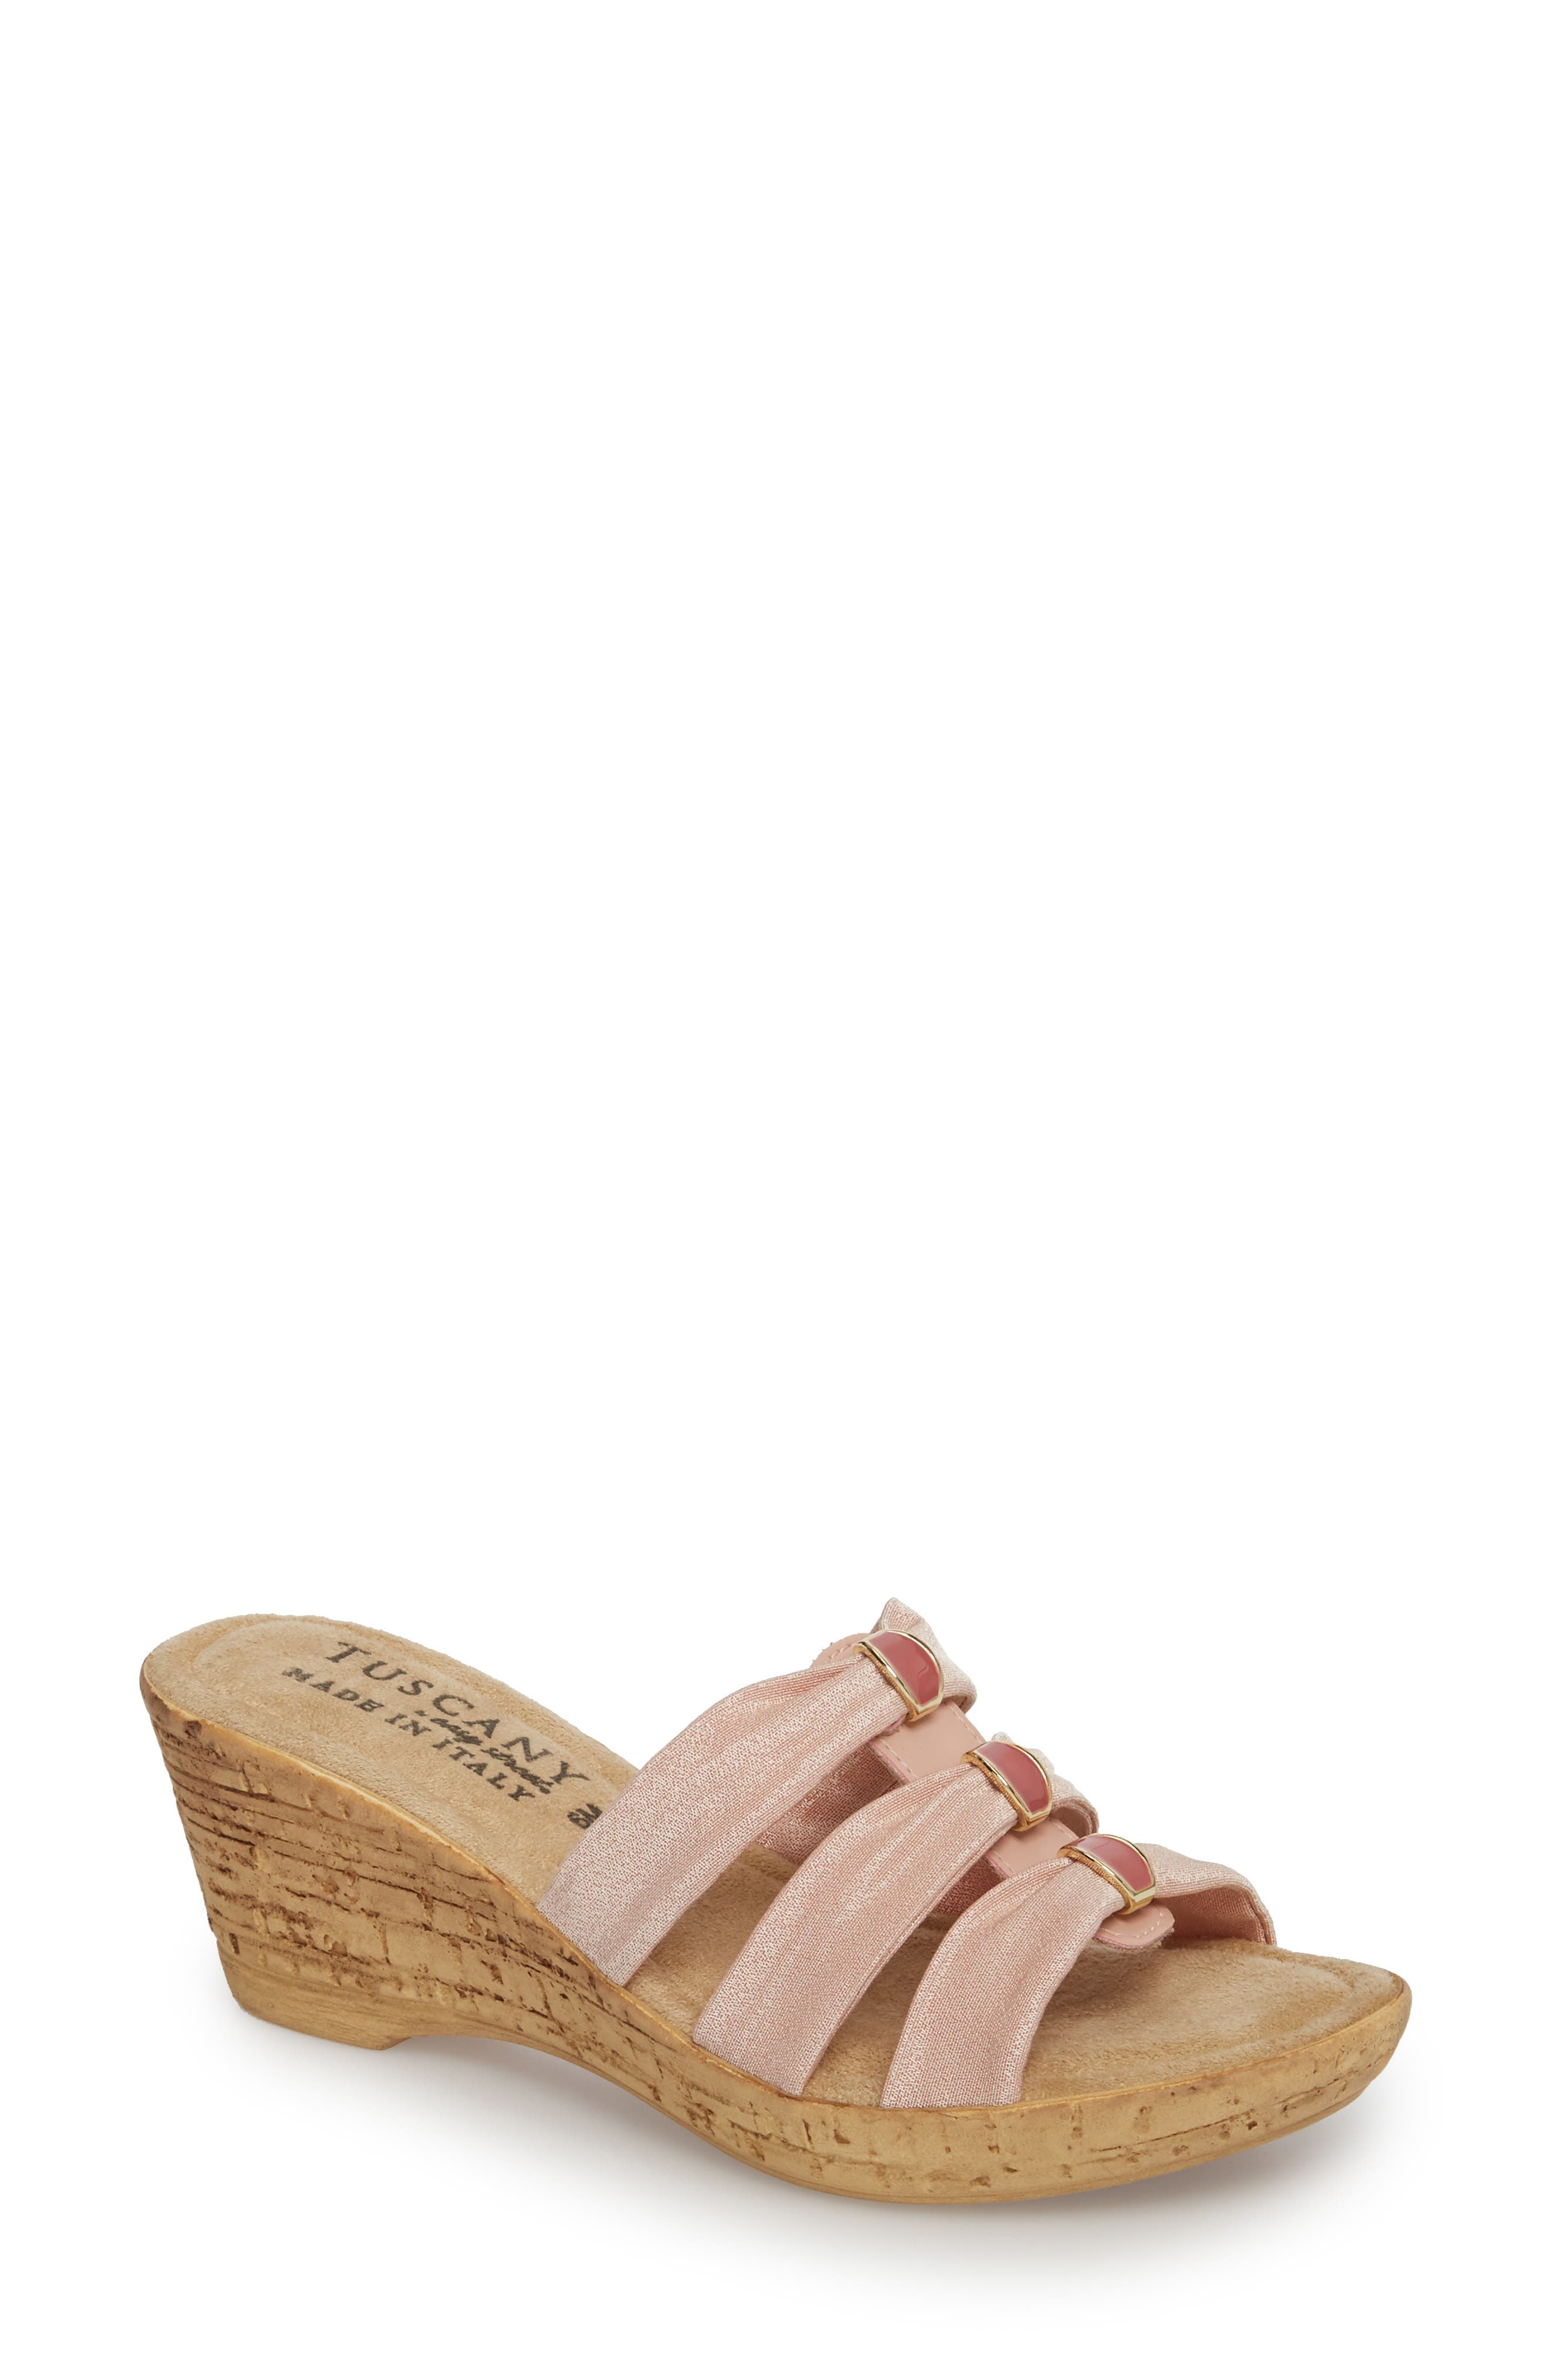 Tuscany By Easy Street Andrea Wedge Slide Sandal, WW - Pink